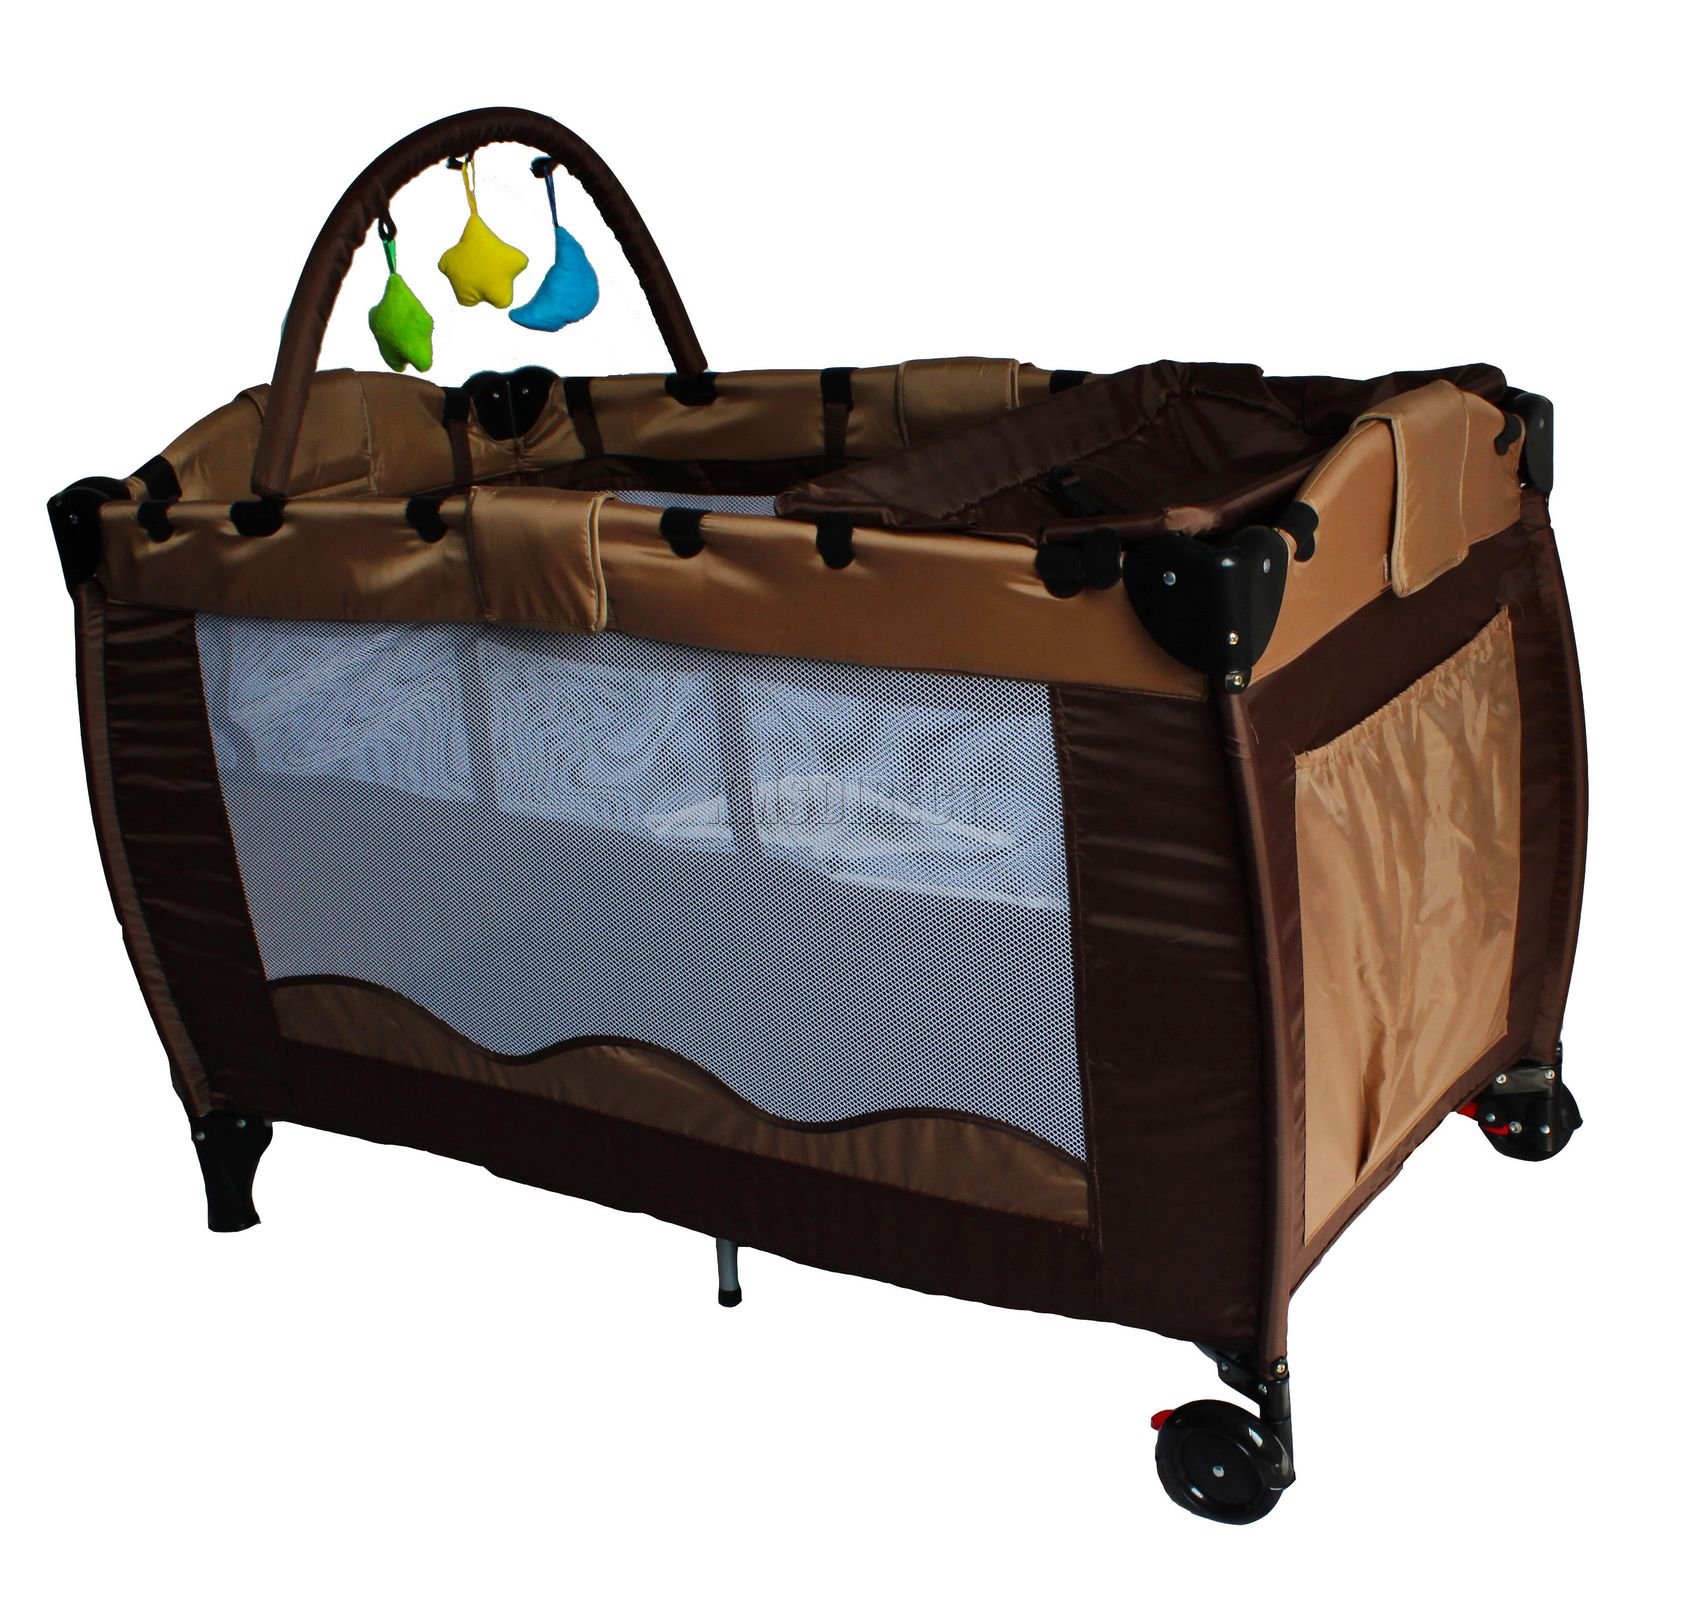 Baby Travel Toys : New brown portable child baby travel cot bed bassinet